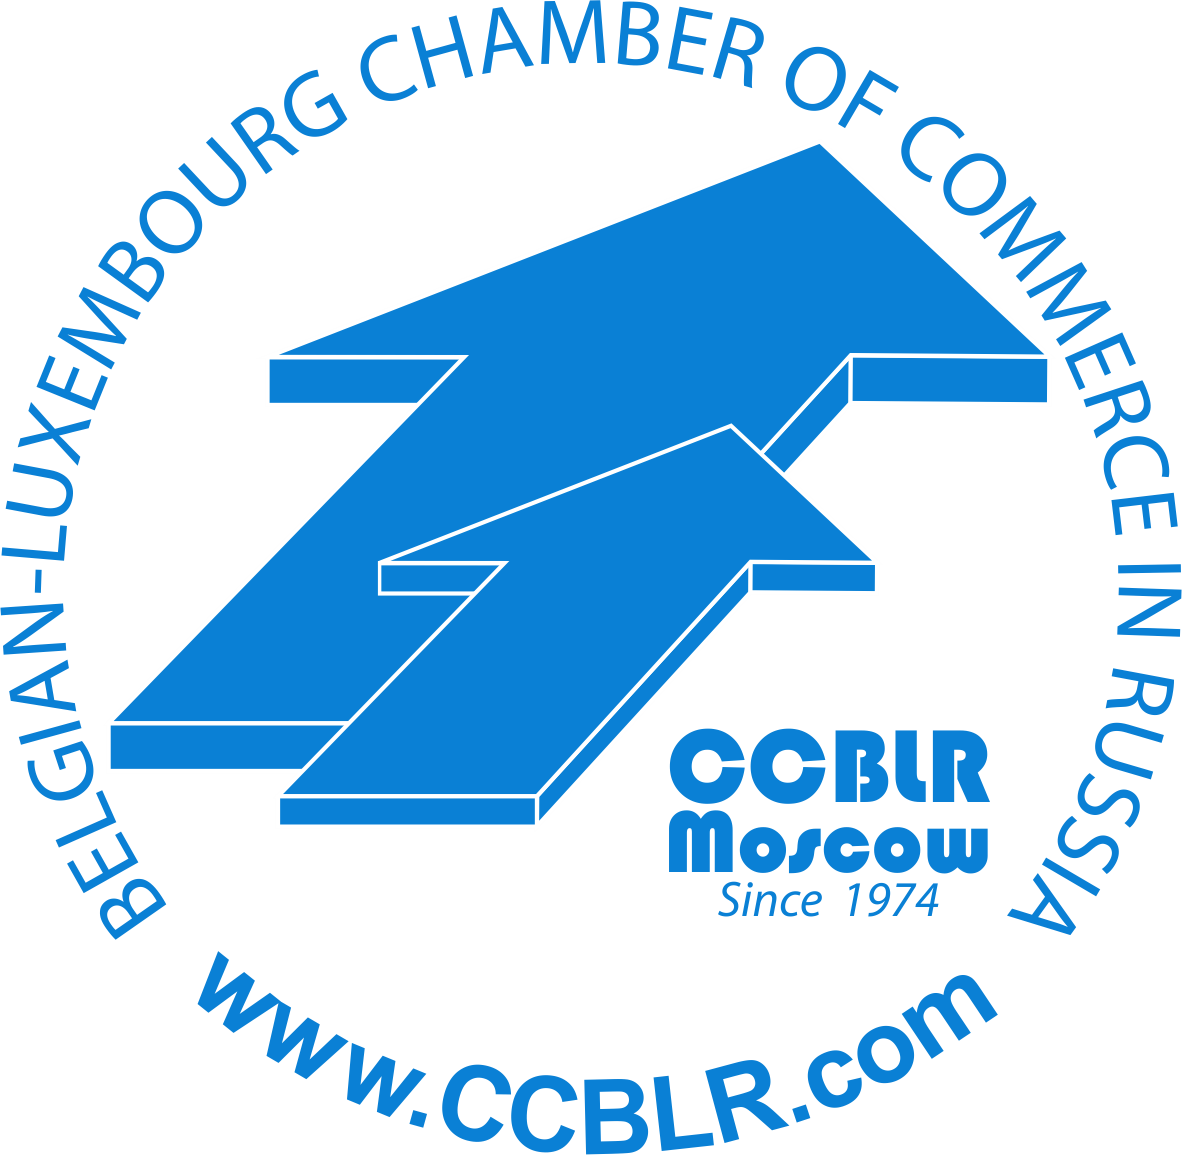 THE BELGIAN–LUXEMBOURG CHAMBER OF COMMERCE